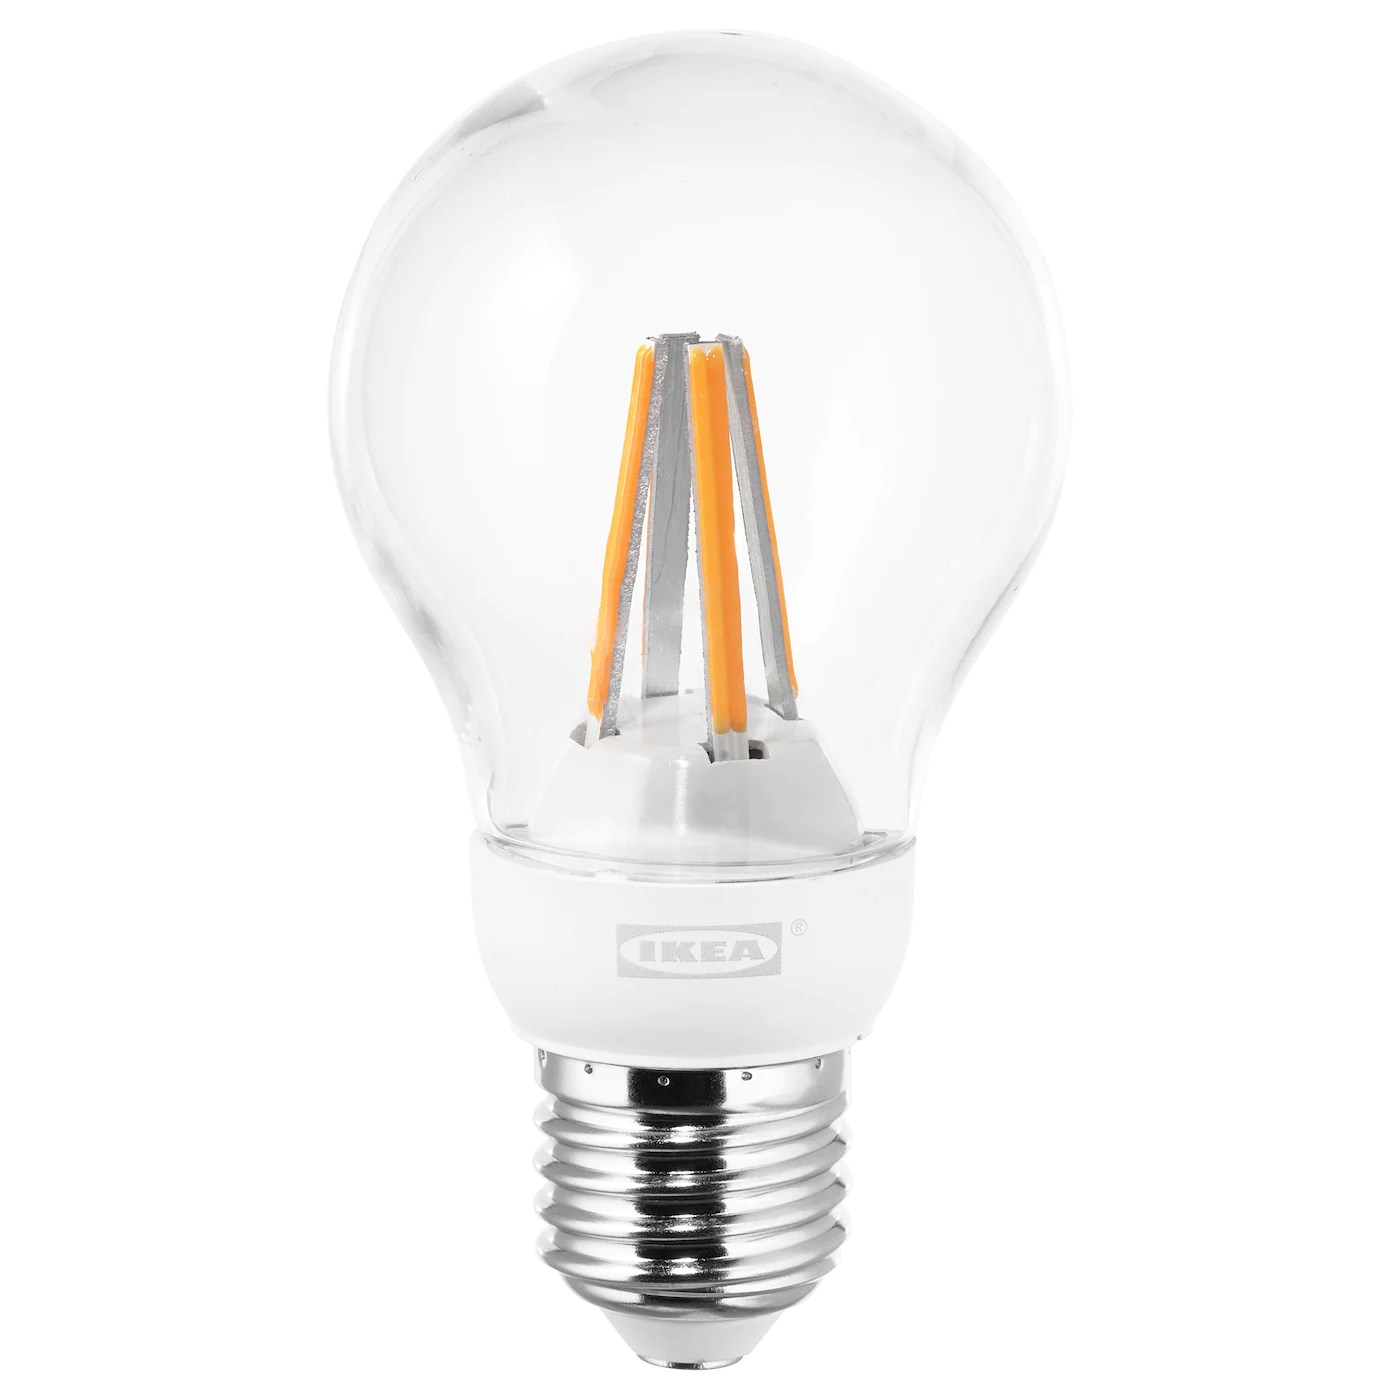 Dimmbare Led Spots Light Bulbs Led Bulbs Accessories Ikea